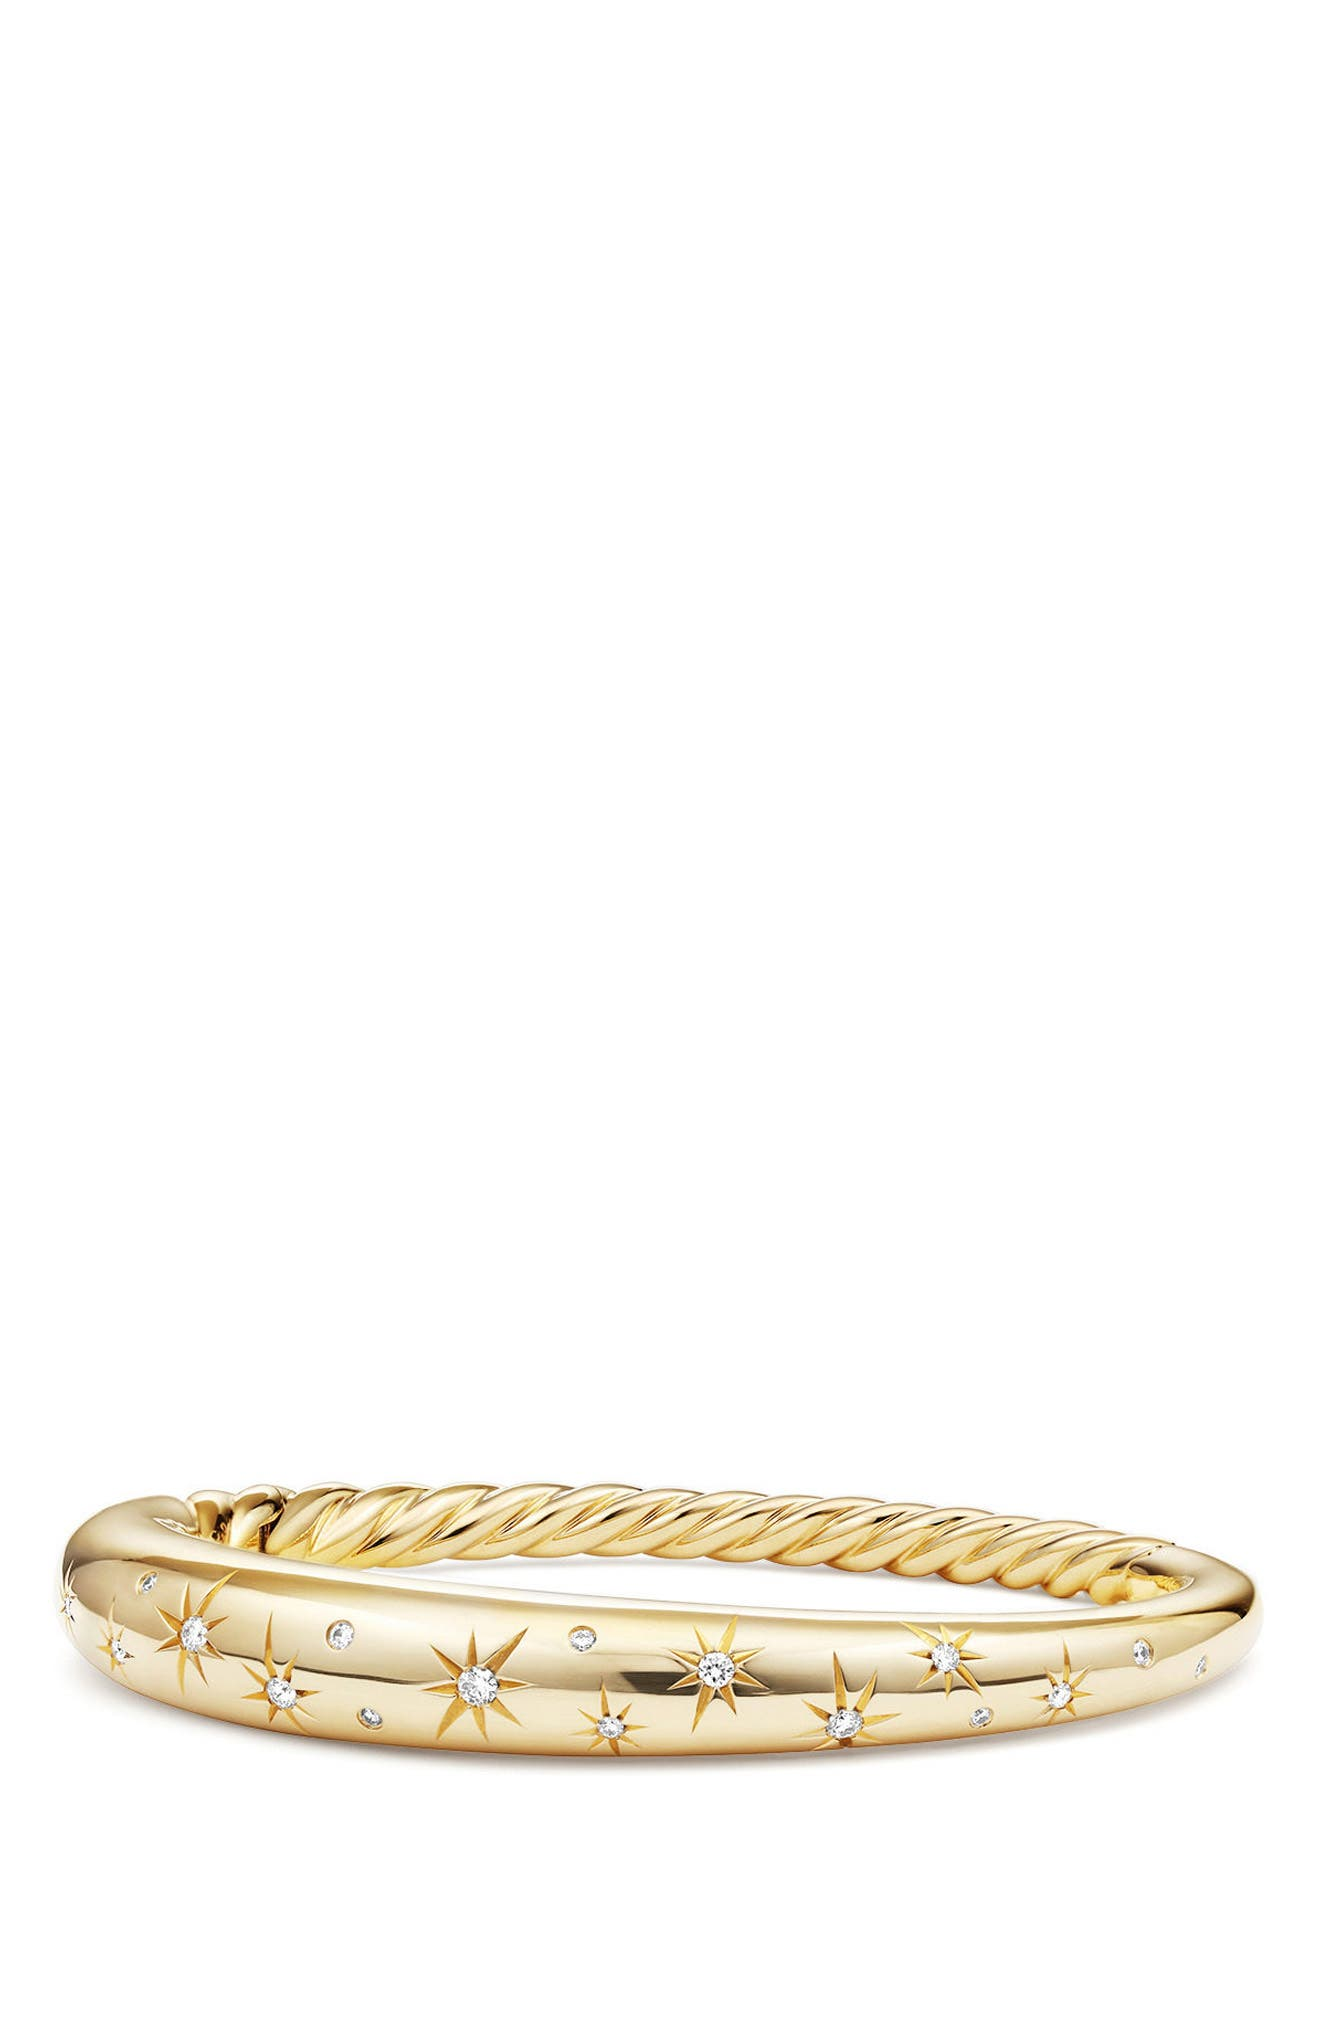 Pure Form<sup>®</sup> CollectionPure Form<sup>®</sup> Smooth 18K Gold Bracelet with Diamonds, 9.5mm,                         Main,                         color, YELLOW GOLD